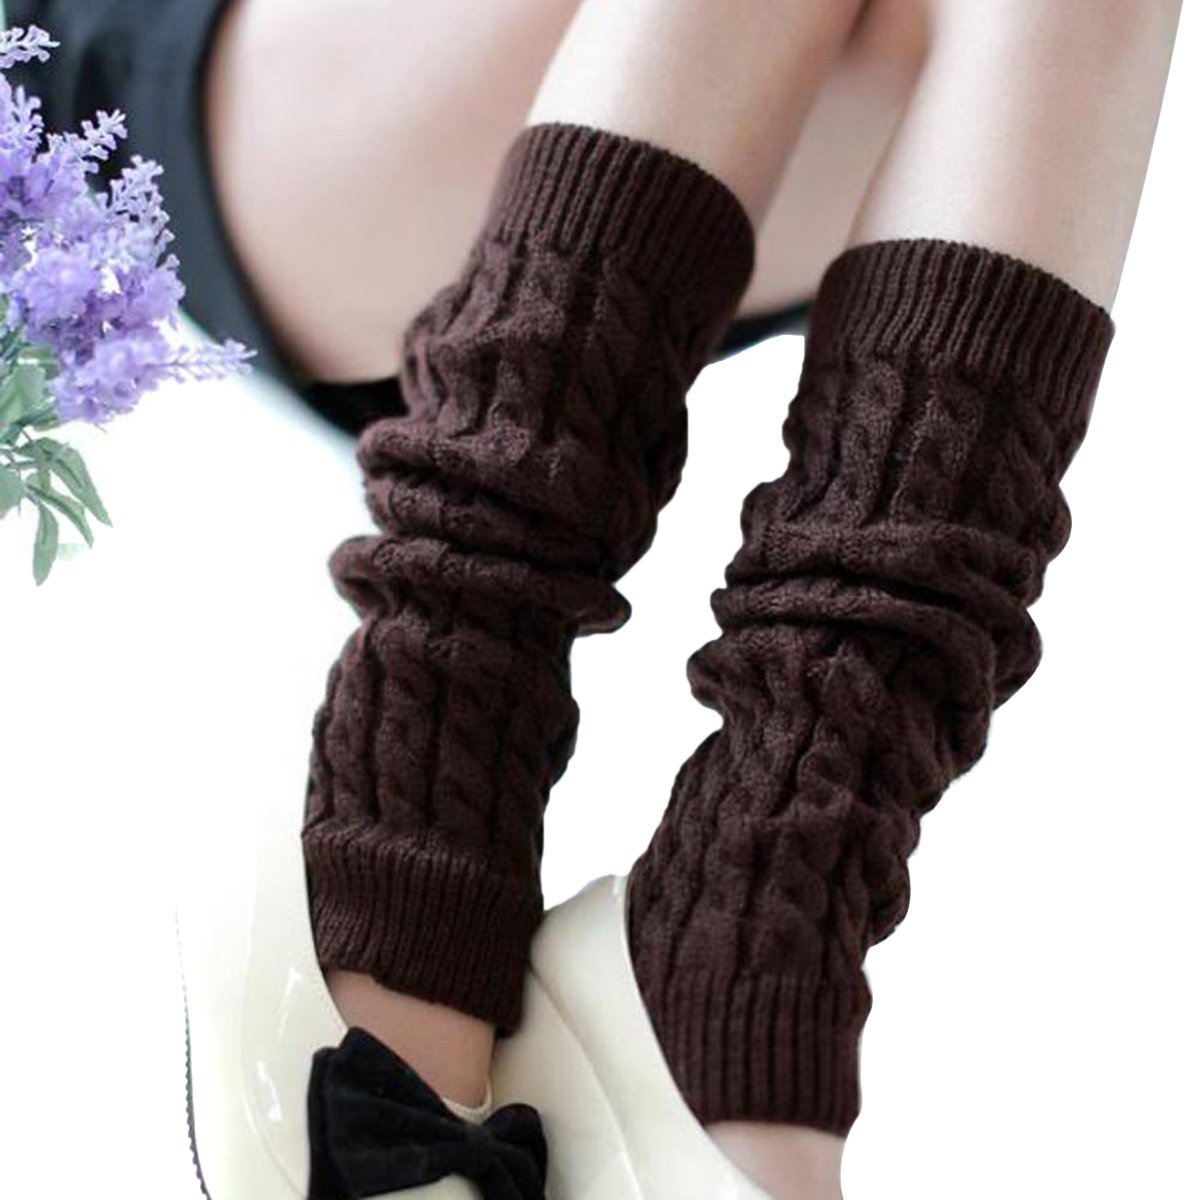 Butterme Fashion Women's Autumn Winter Warm Crochet Braided Knitted Leg Warmers (Light Grey) ZUMUii